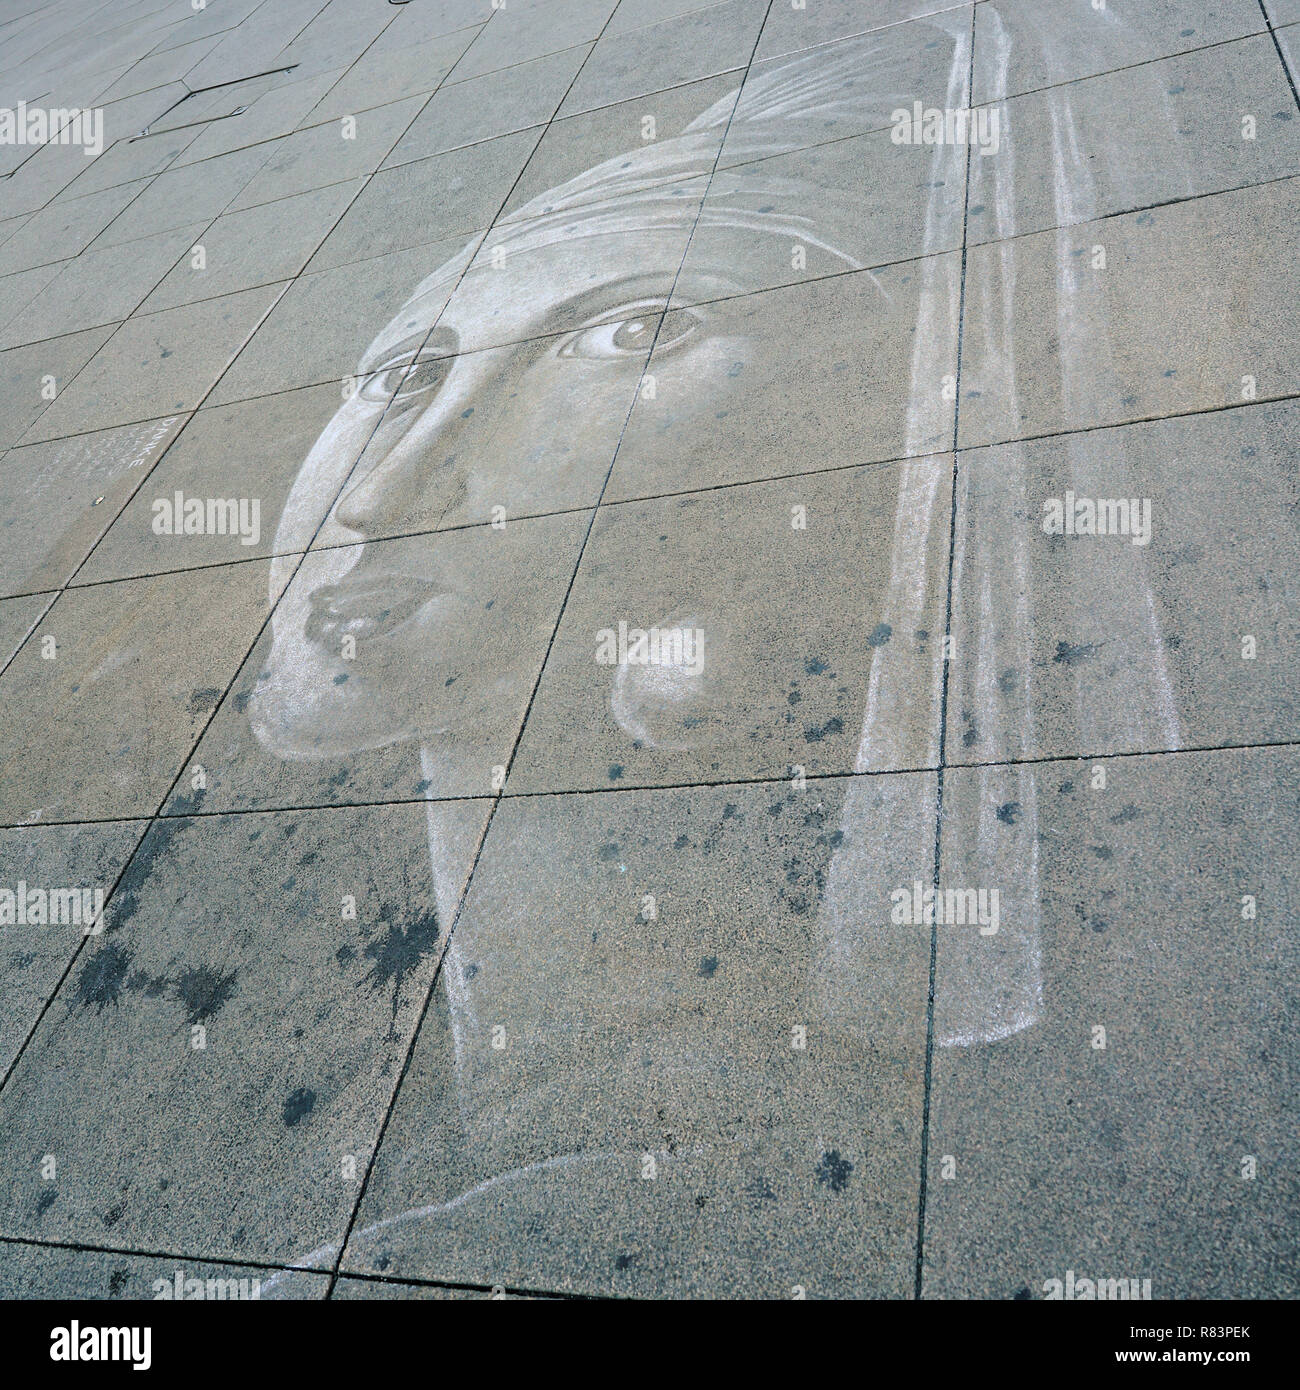 faded chalk drawing on a footpath in Berlin - Stock Image